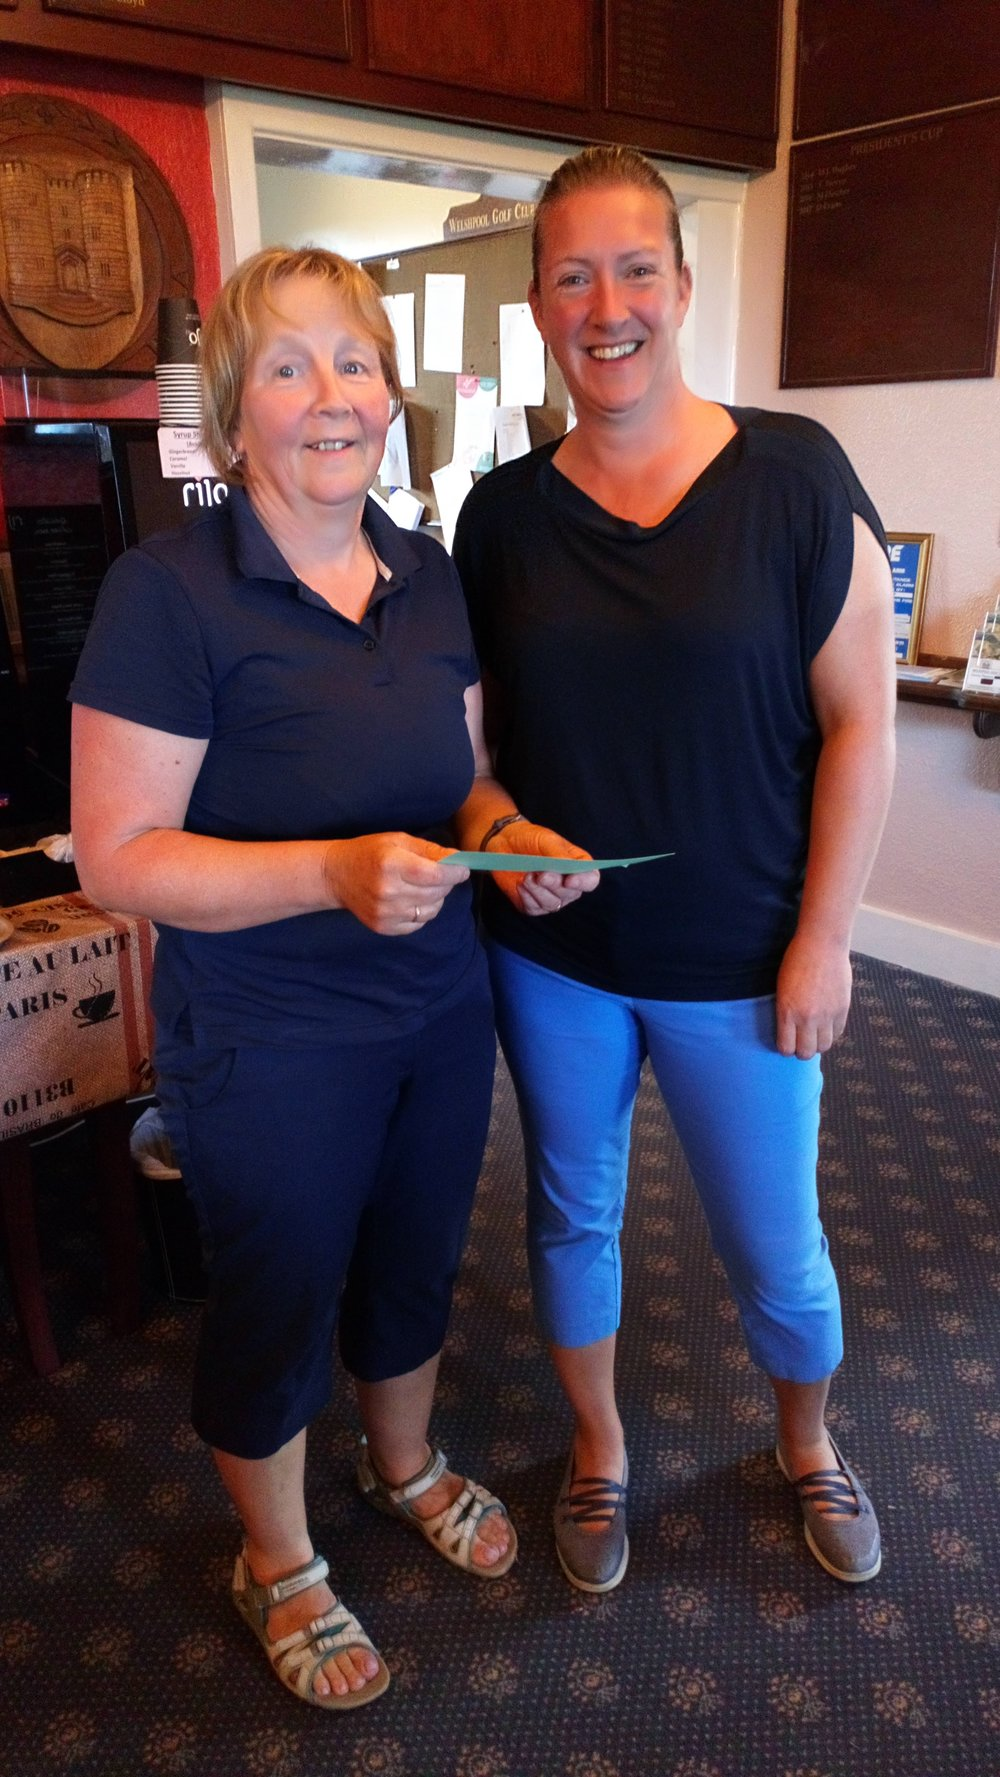 Pam Lewis of St. Giles (L), 3rd in the Bronze Division, with Ellen Jones of Welshpool.